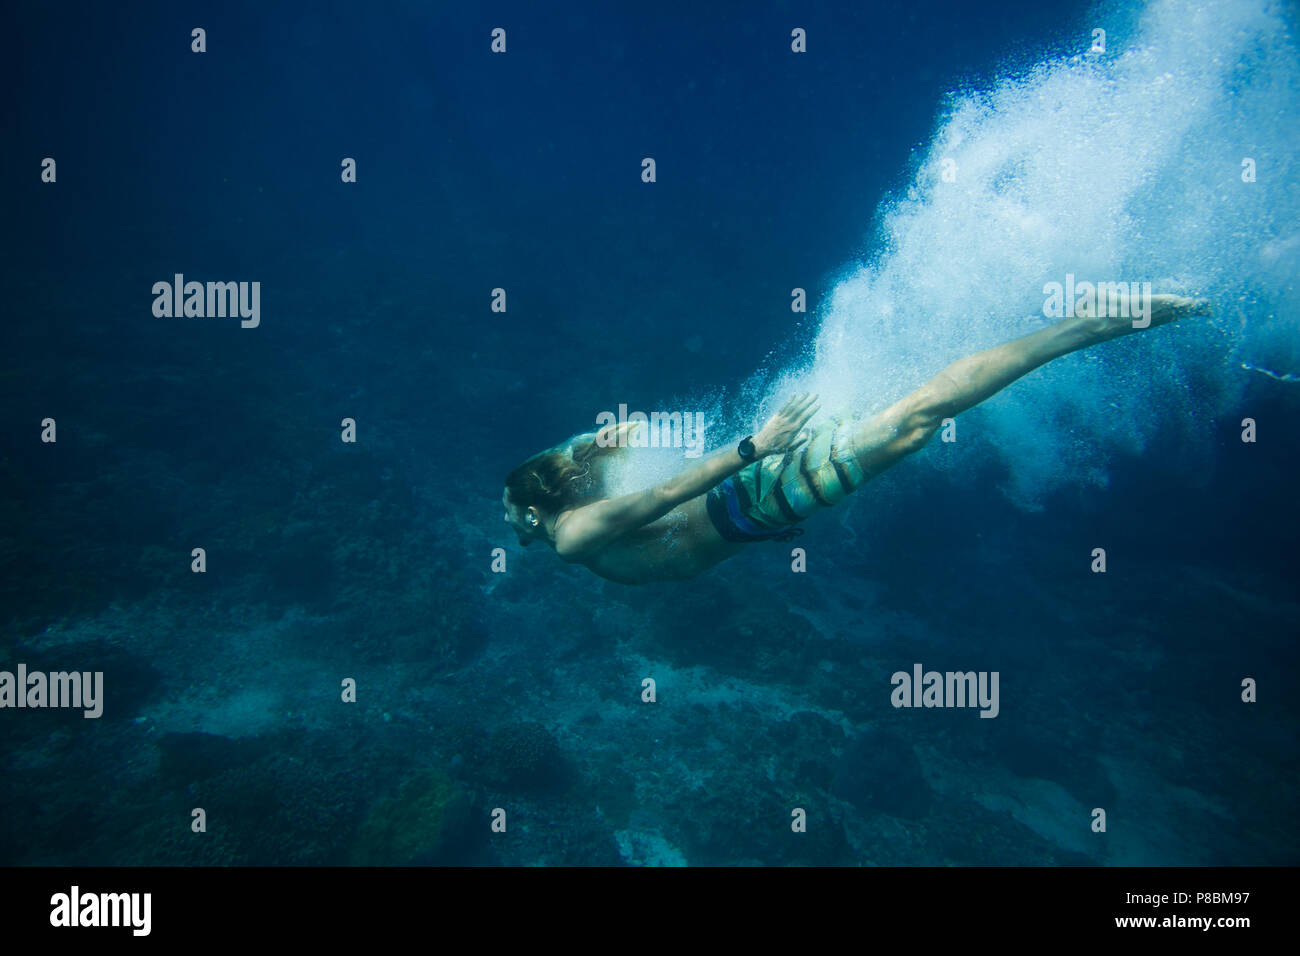 underwater pic of young man diving in ocean alone - Stock Image